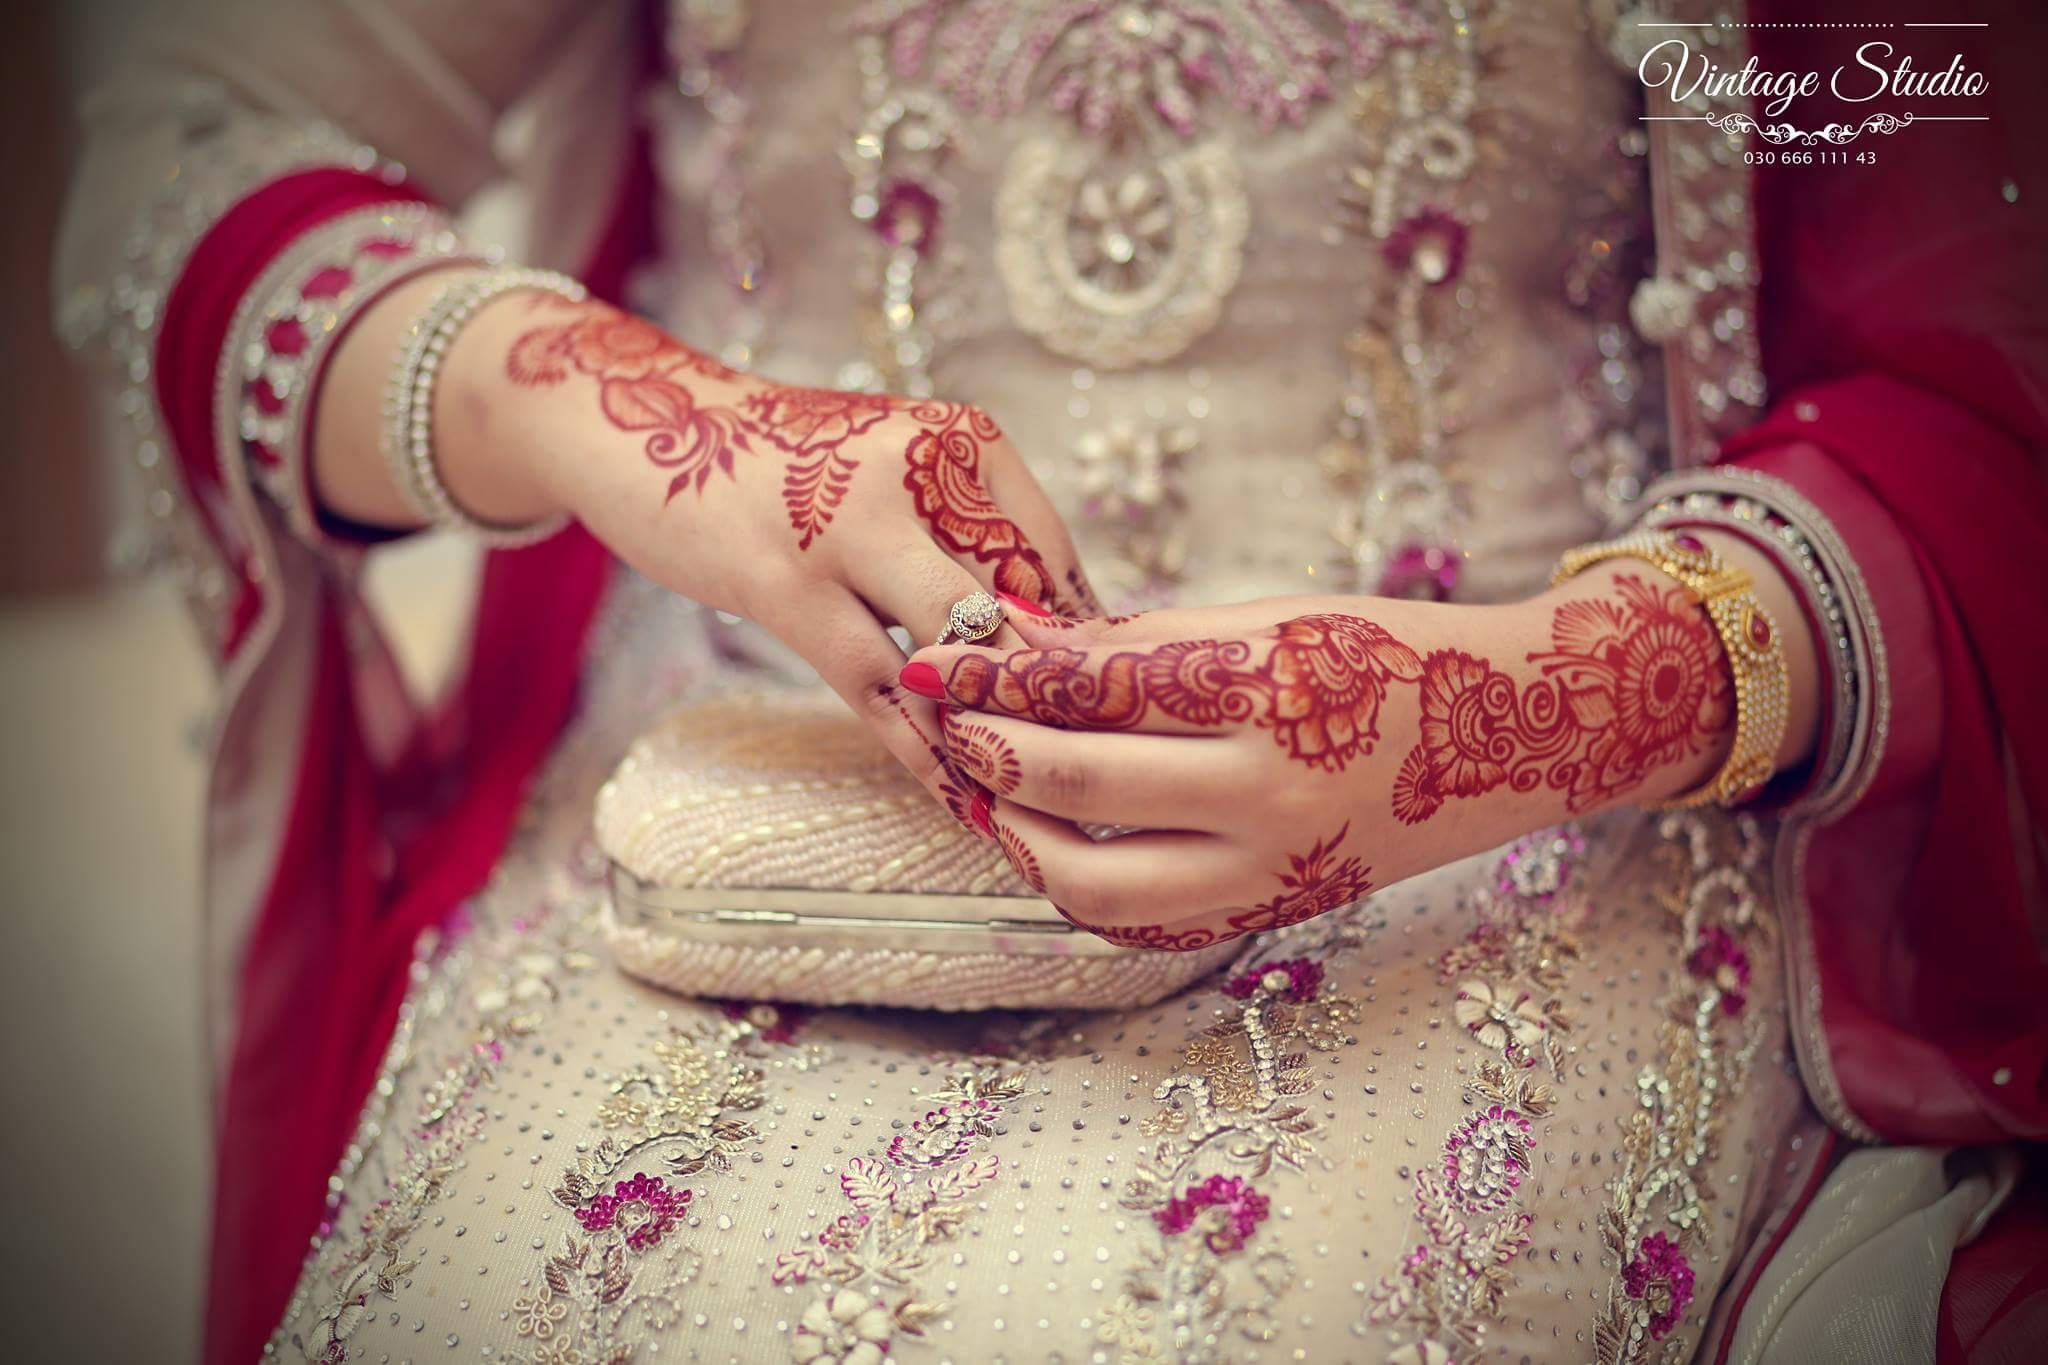 Mehndi Hands Dps : Vintage studio photography hands decorated with mehndi bangles